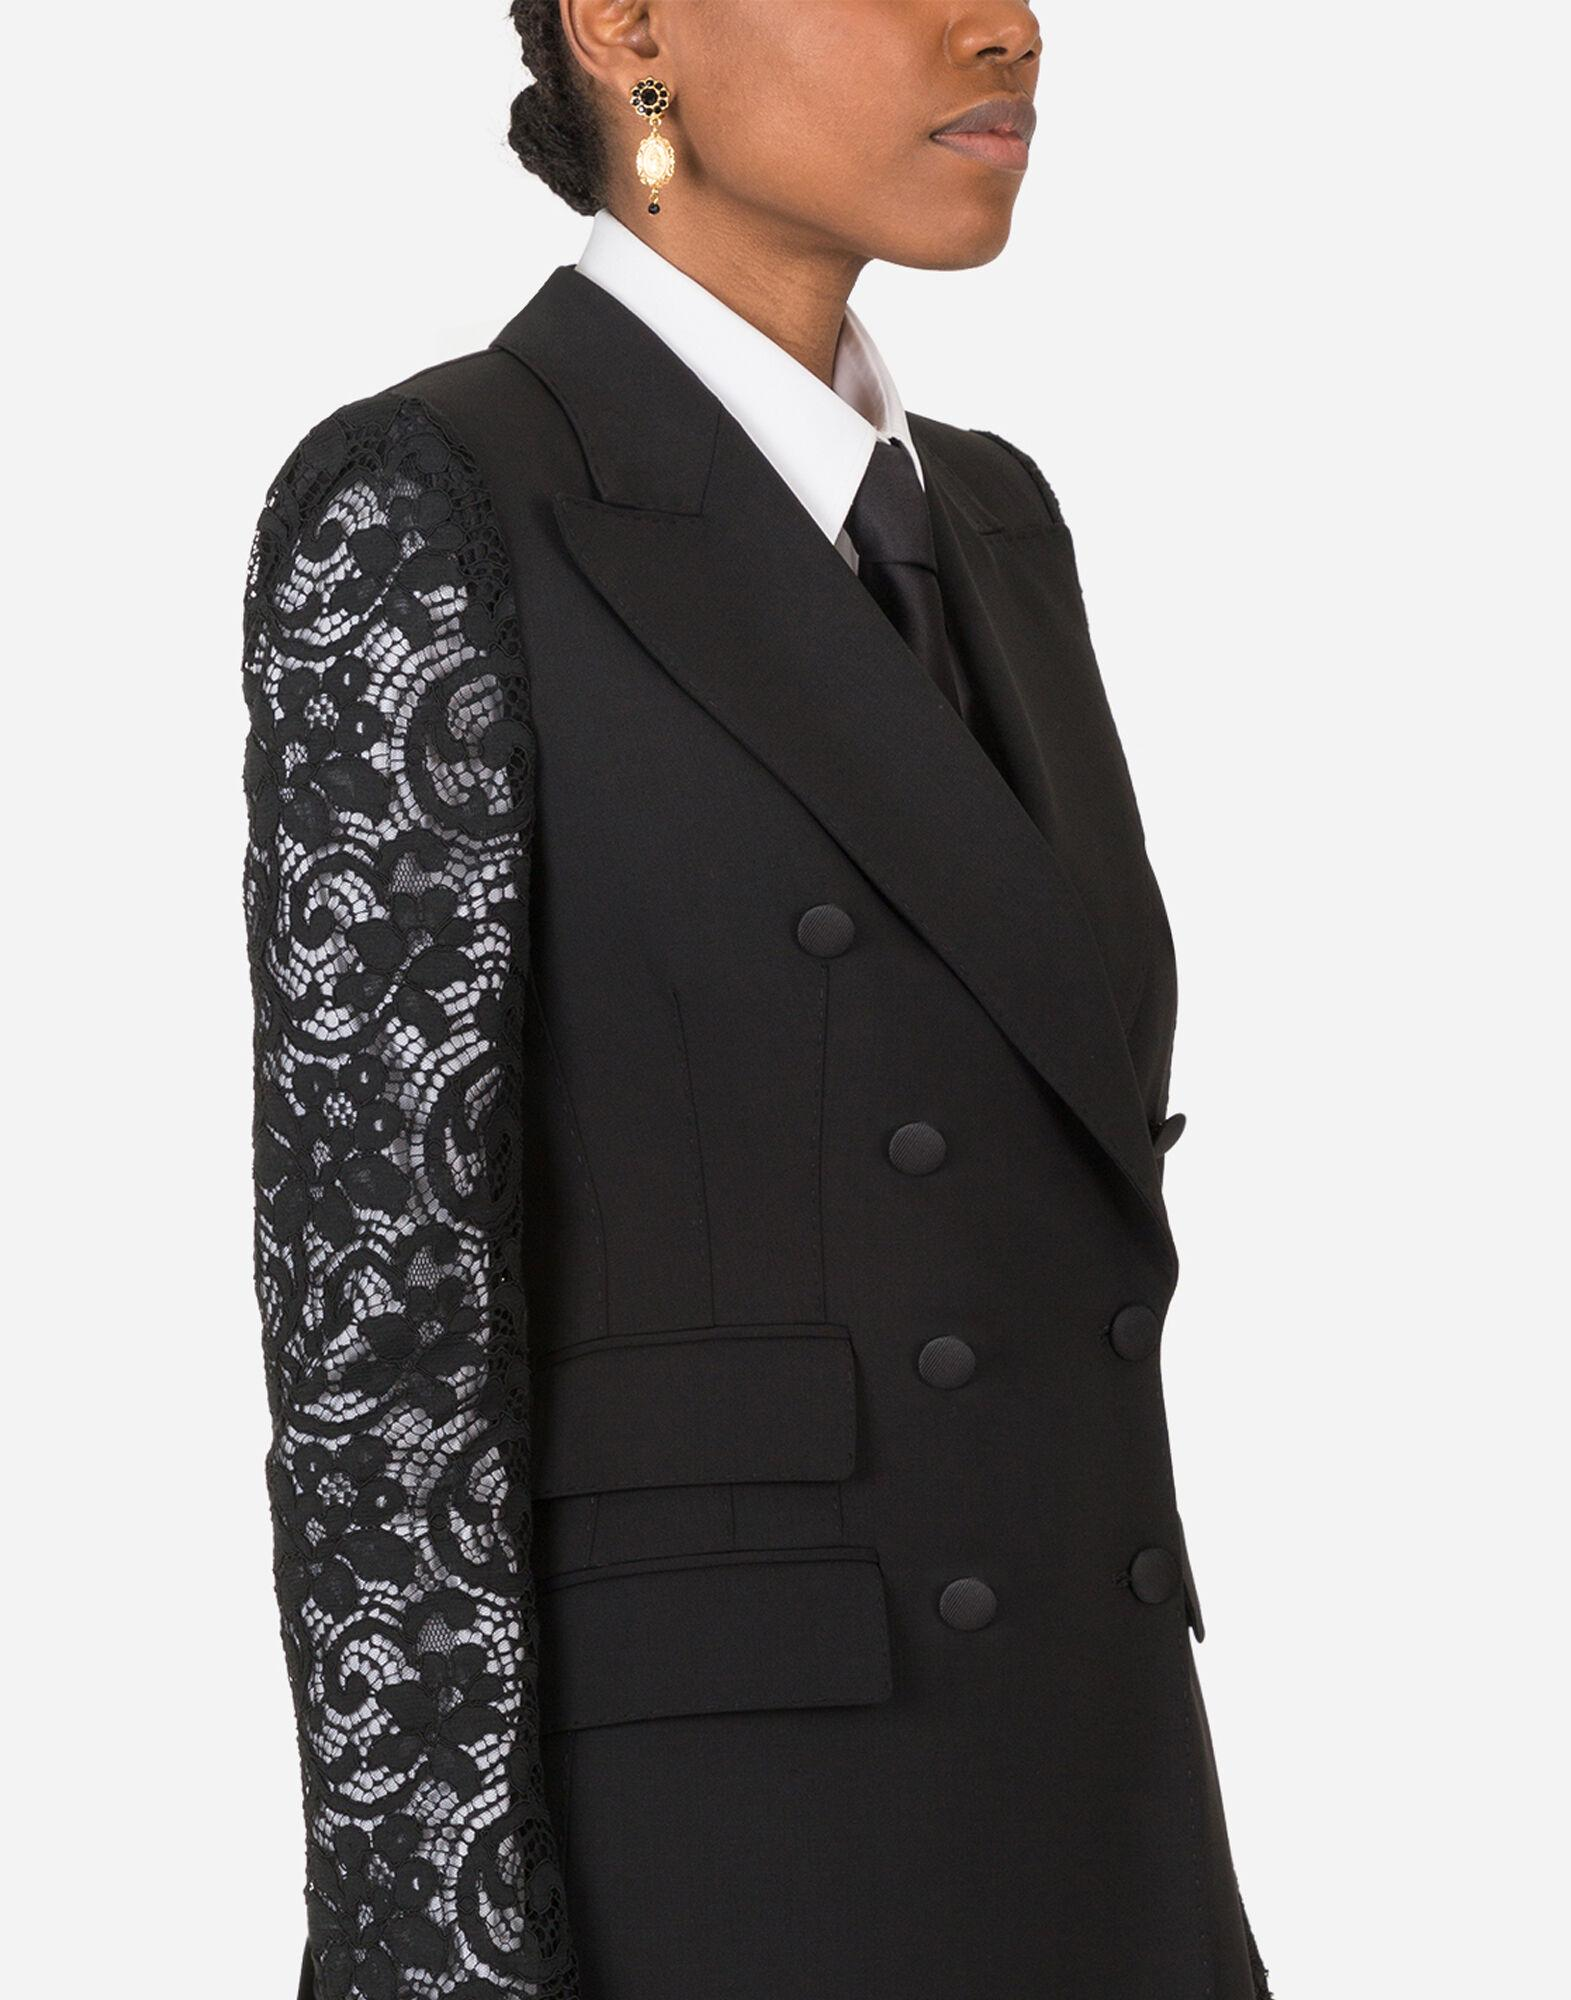 Double-breasted woolen blazer with lace sleeves 2